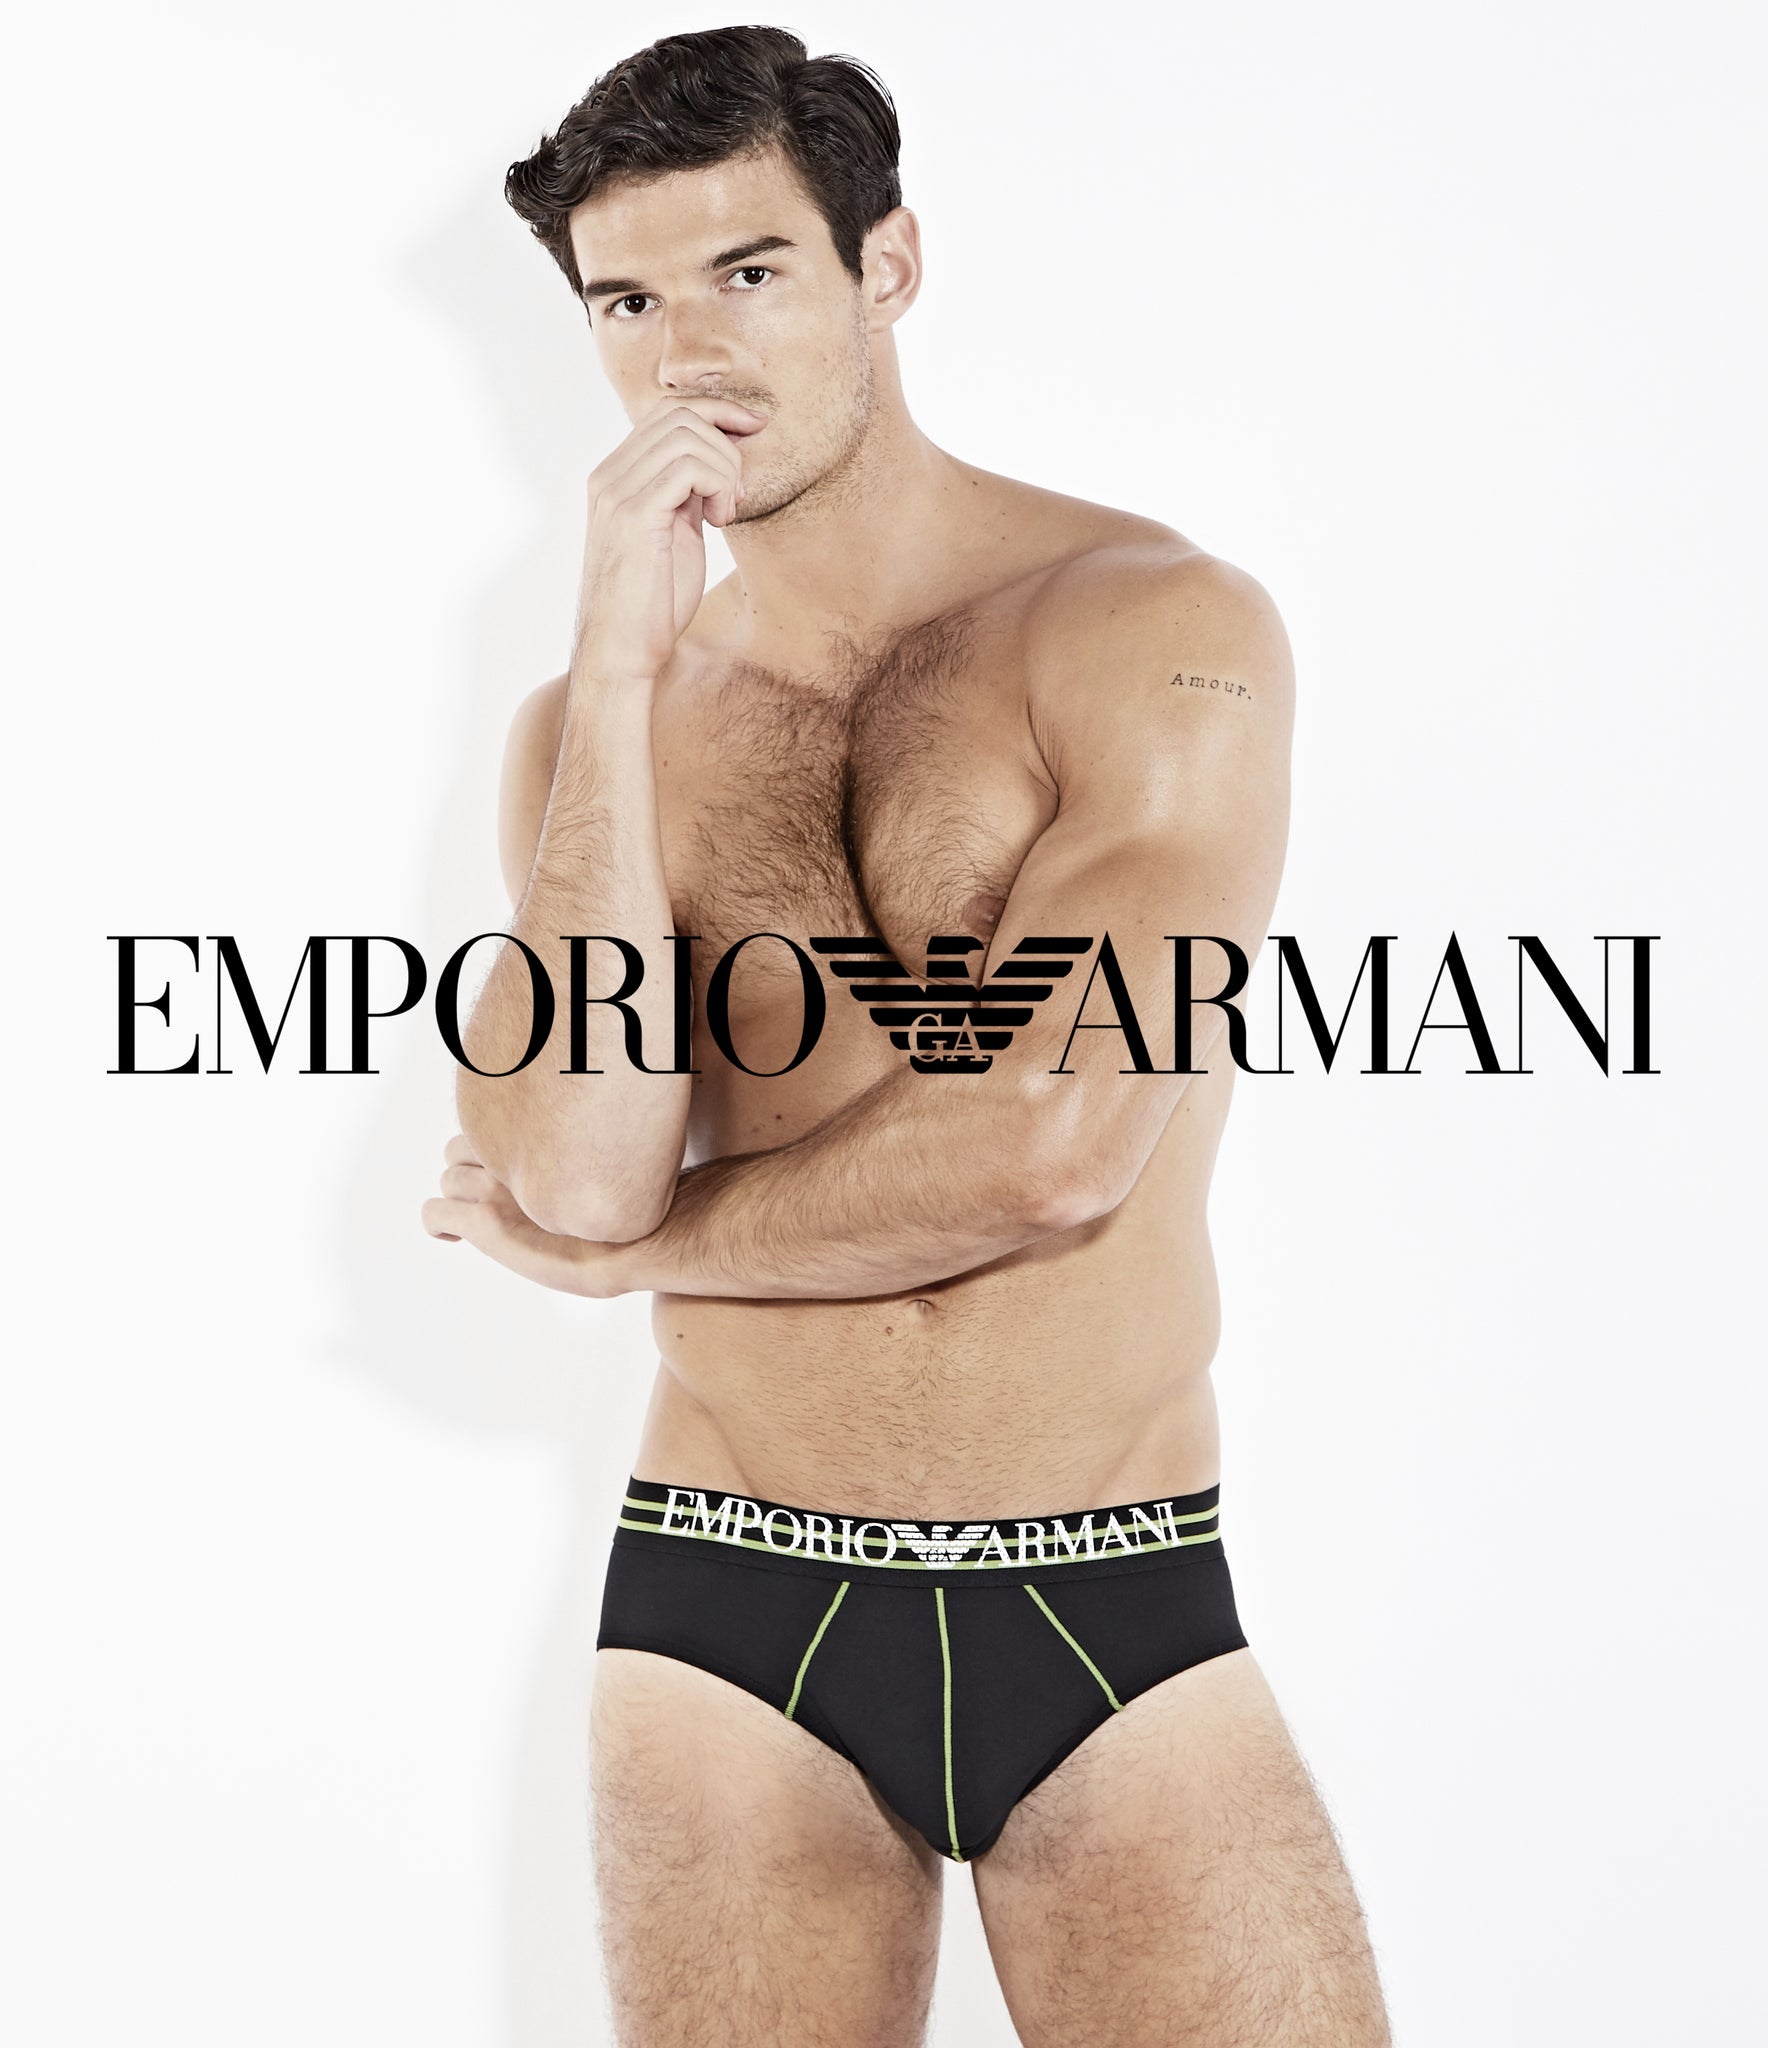 Emporio Armani Underwear at BANG&STRIKE